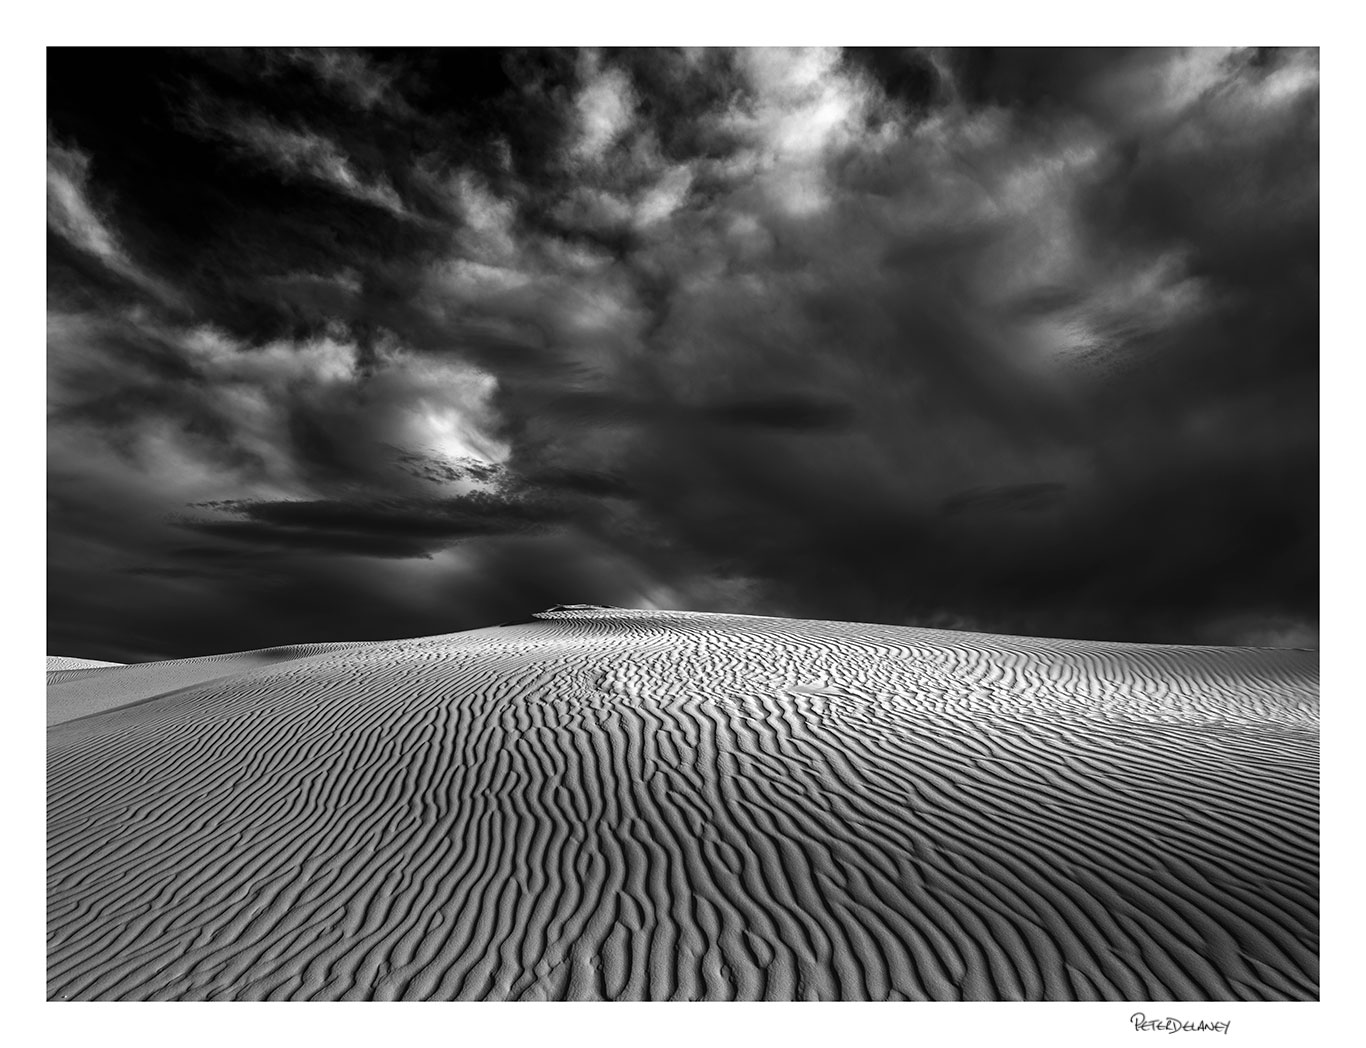 Patterns storm clouds de hoop landscape print